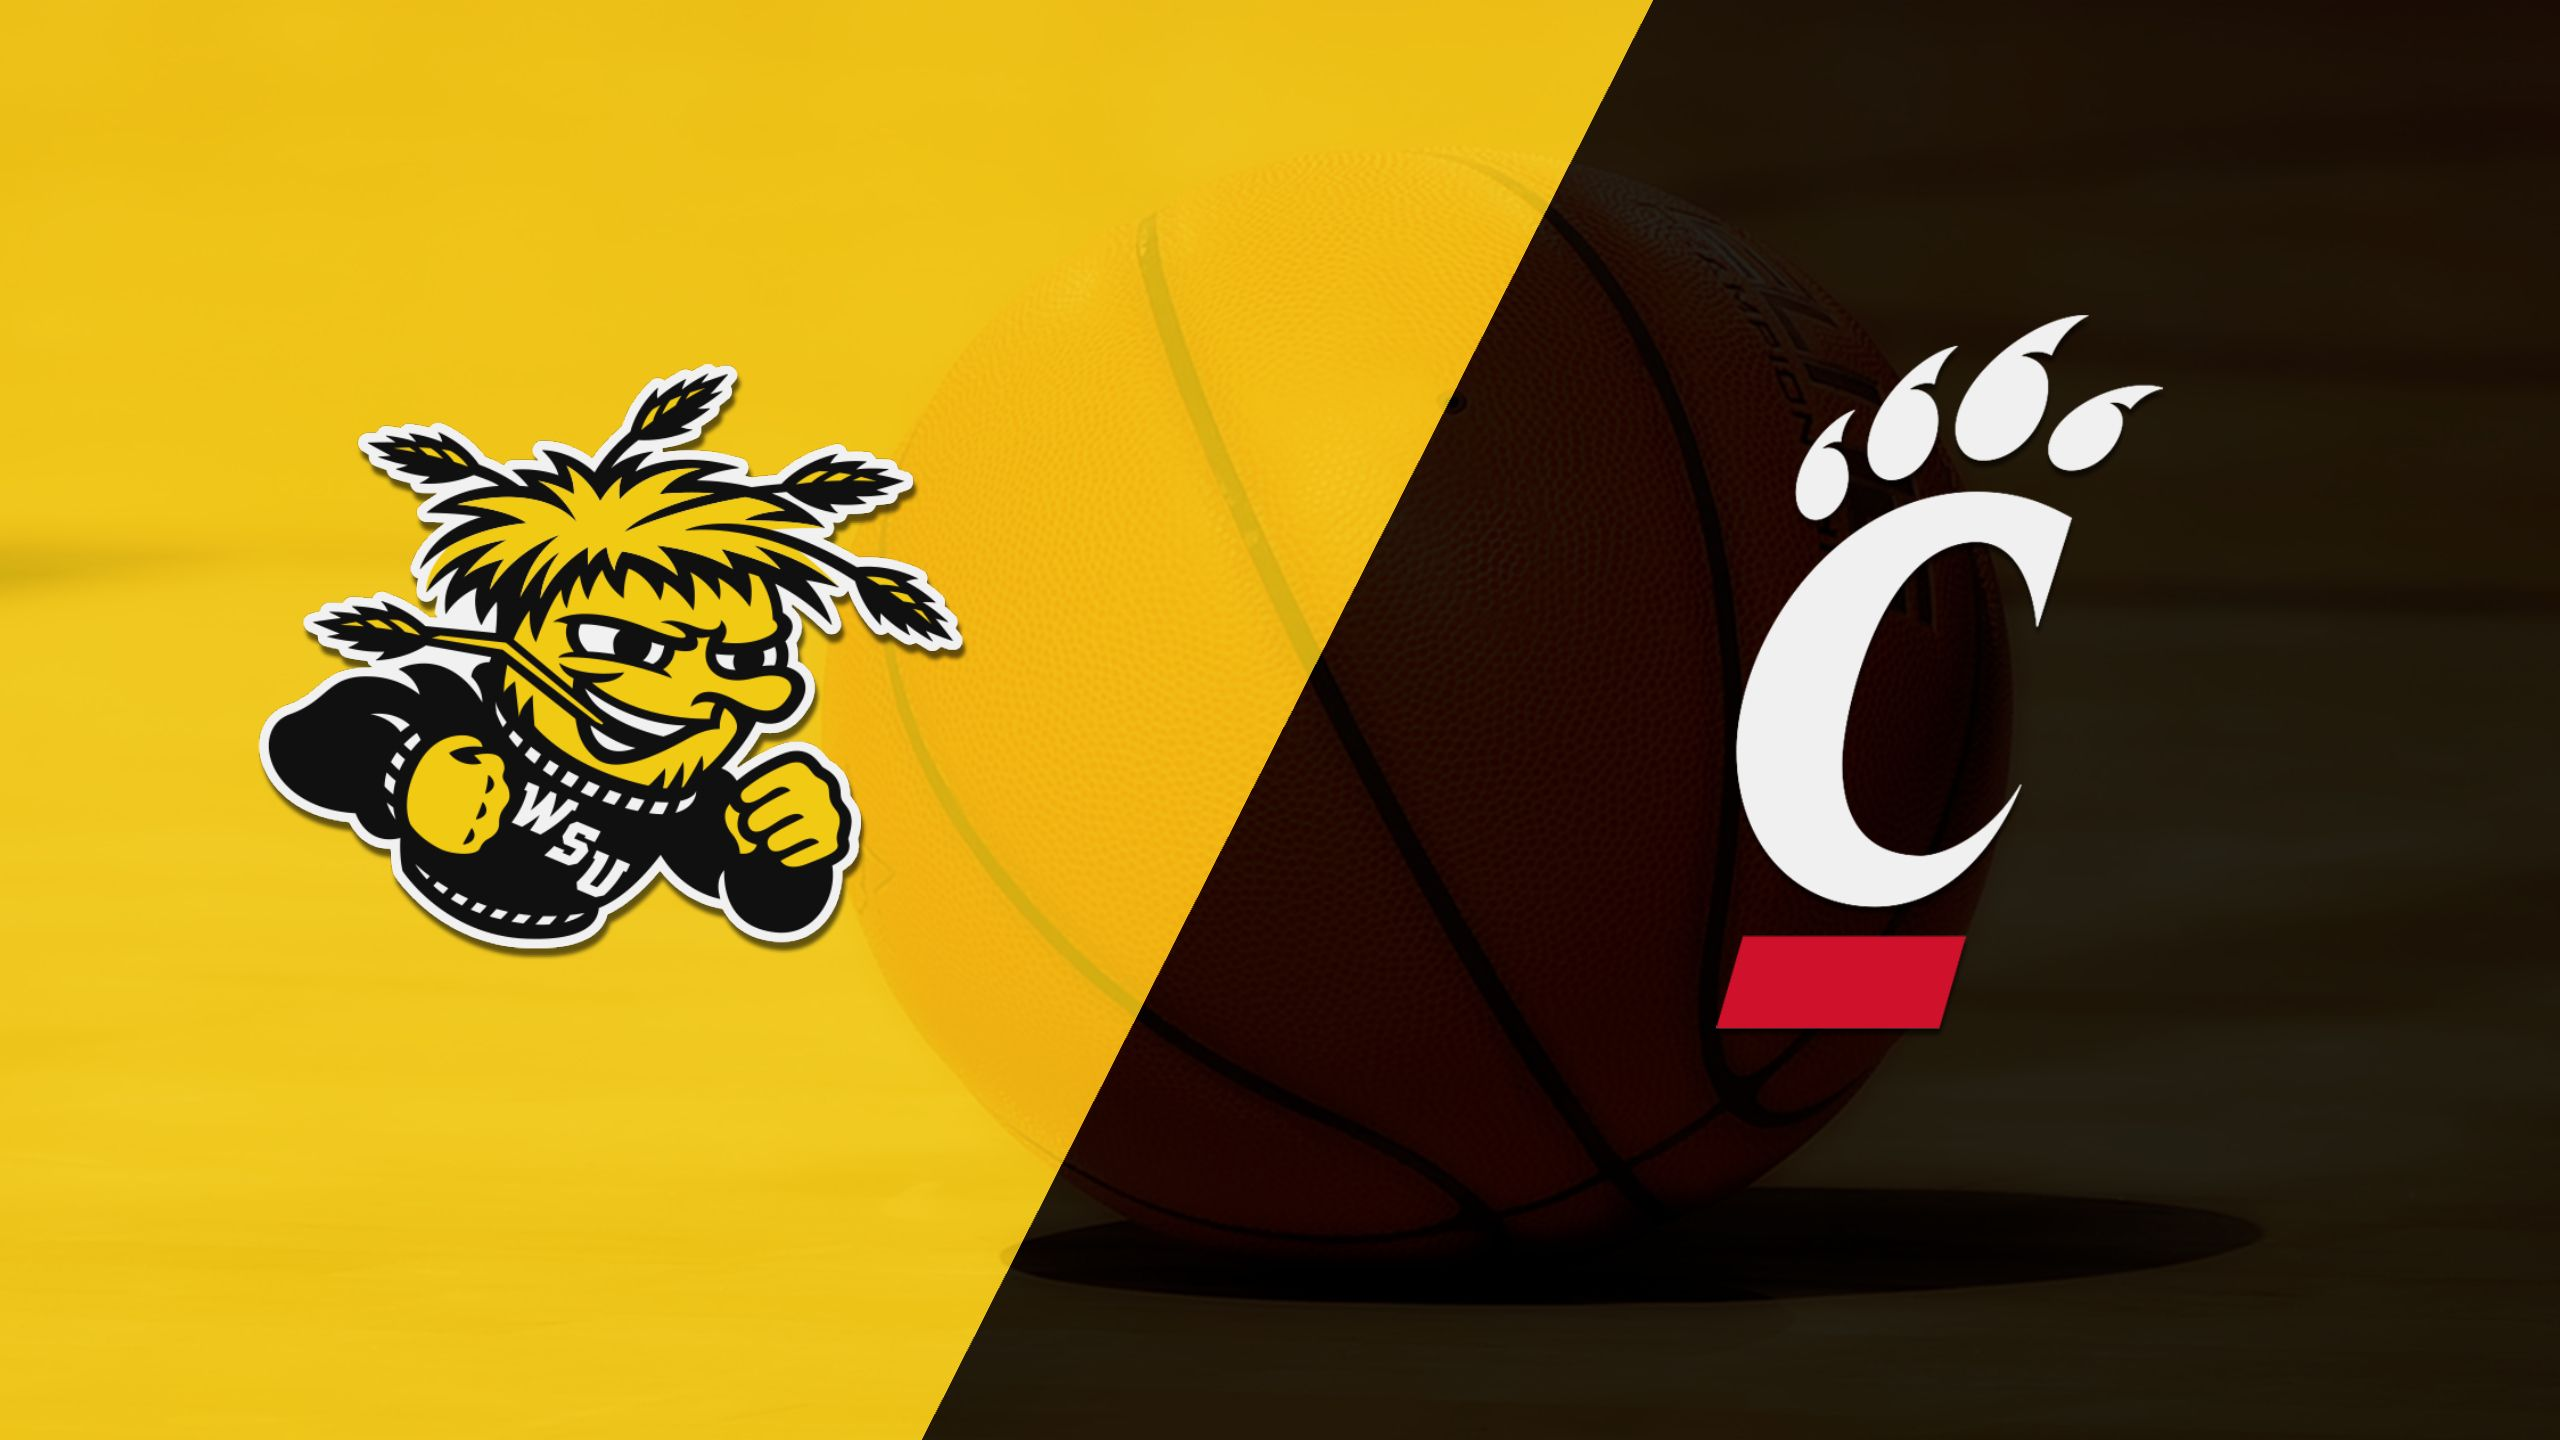 #19 Wichita State vs. #5 Cincinnati (M Basketball)